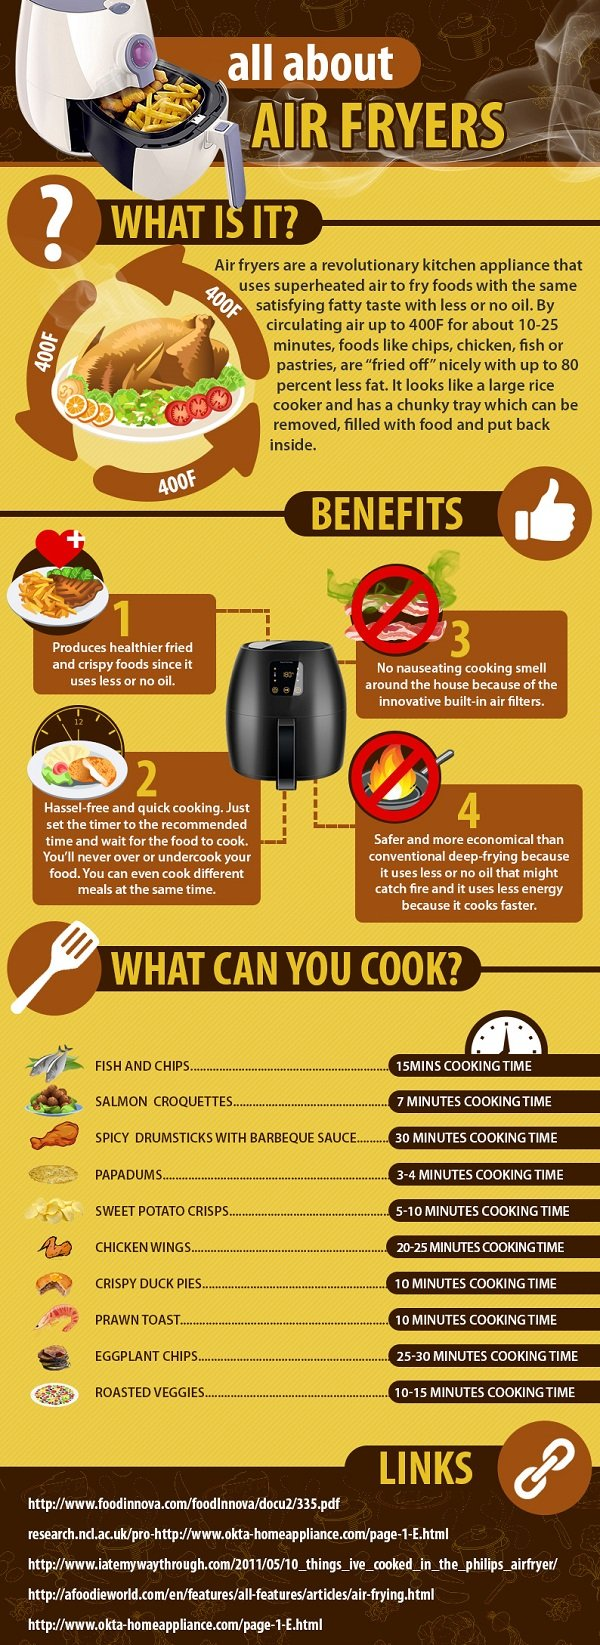 Info-graphic on Air Fryer Cooking